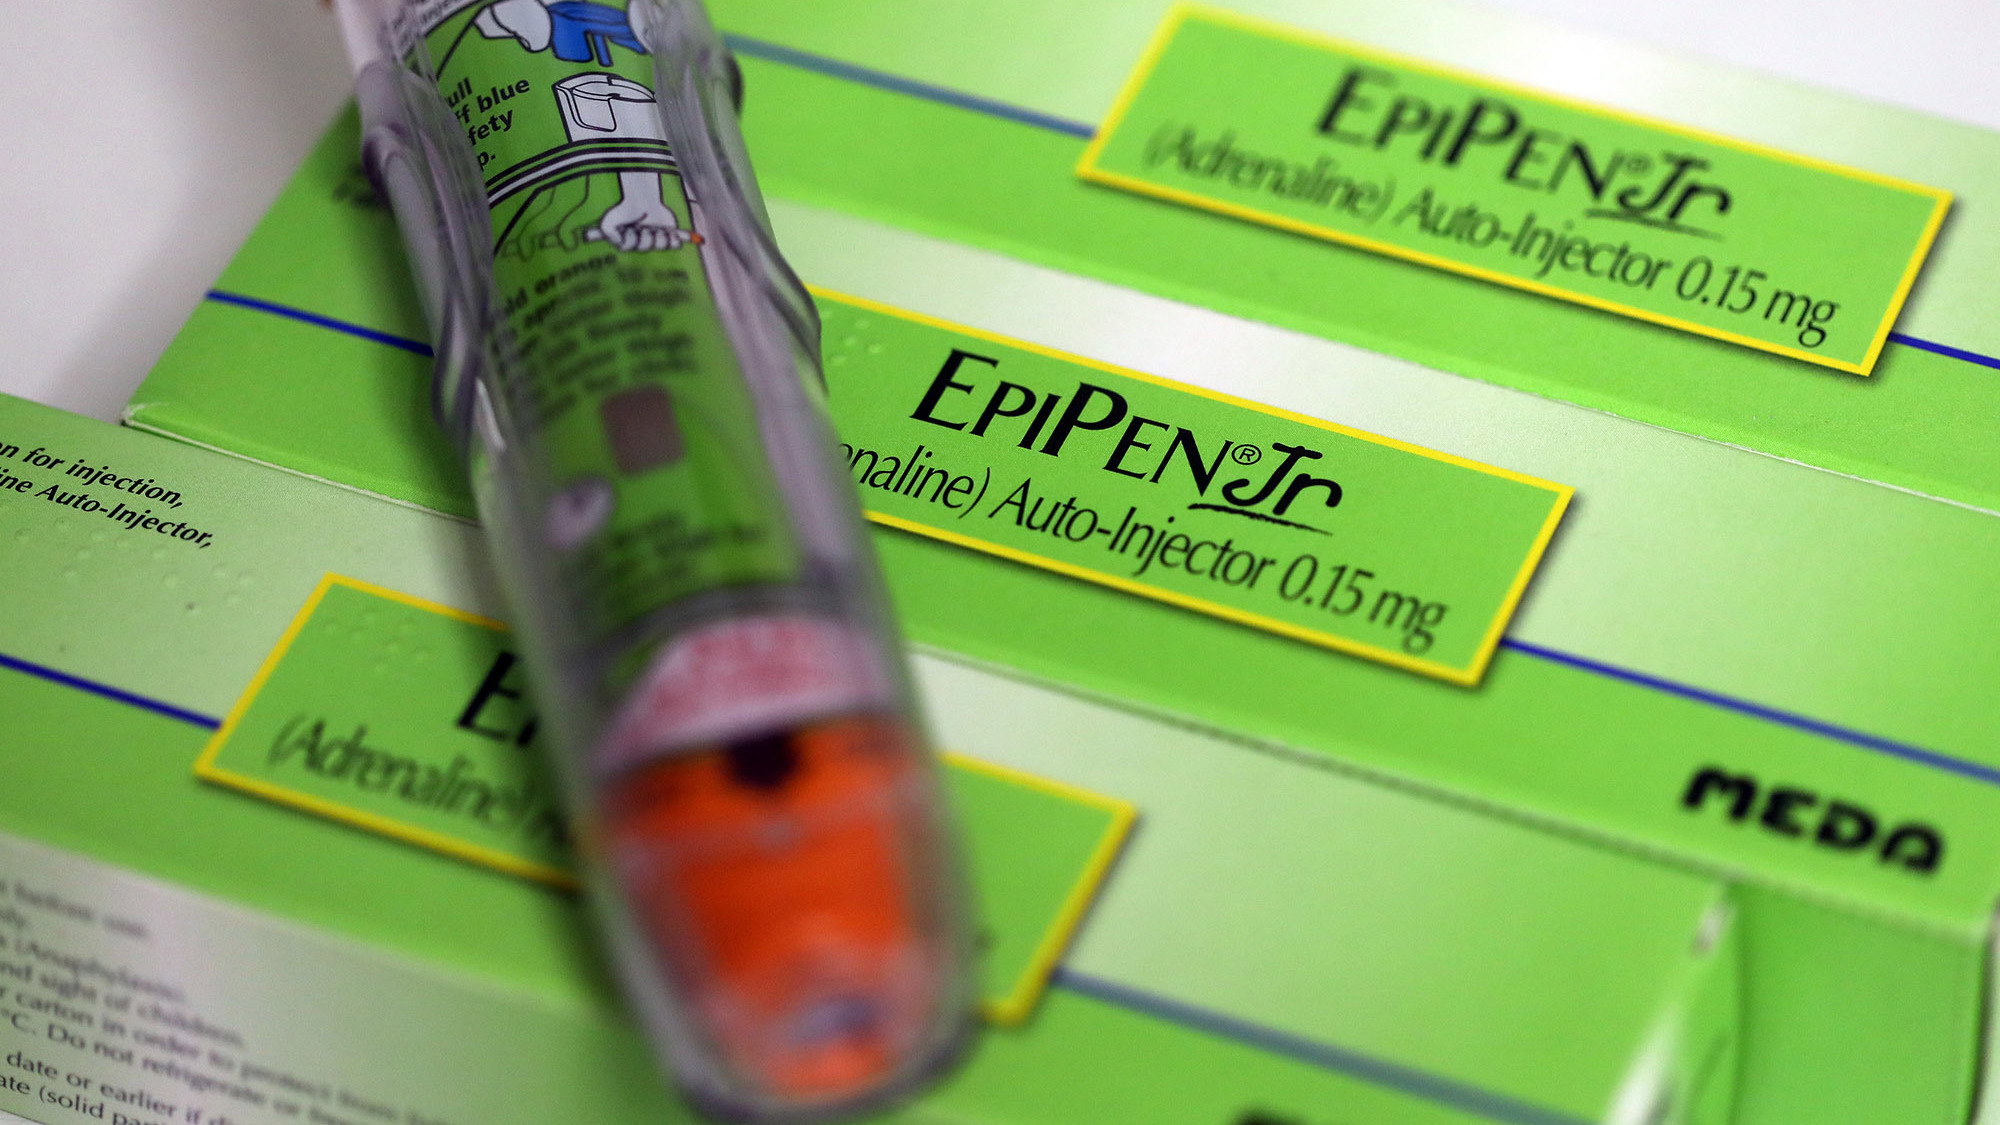 medium resolution of some epipens recalled in u s over concerns they could fail to activate shots health news npr